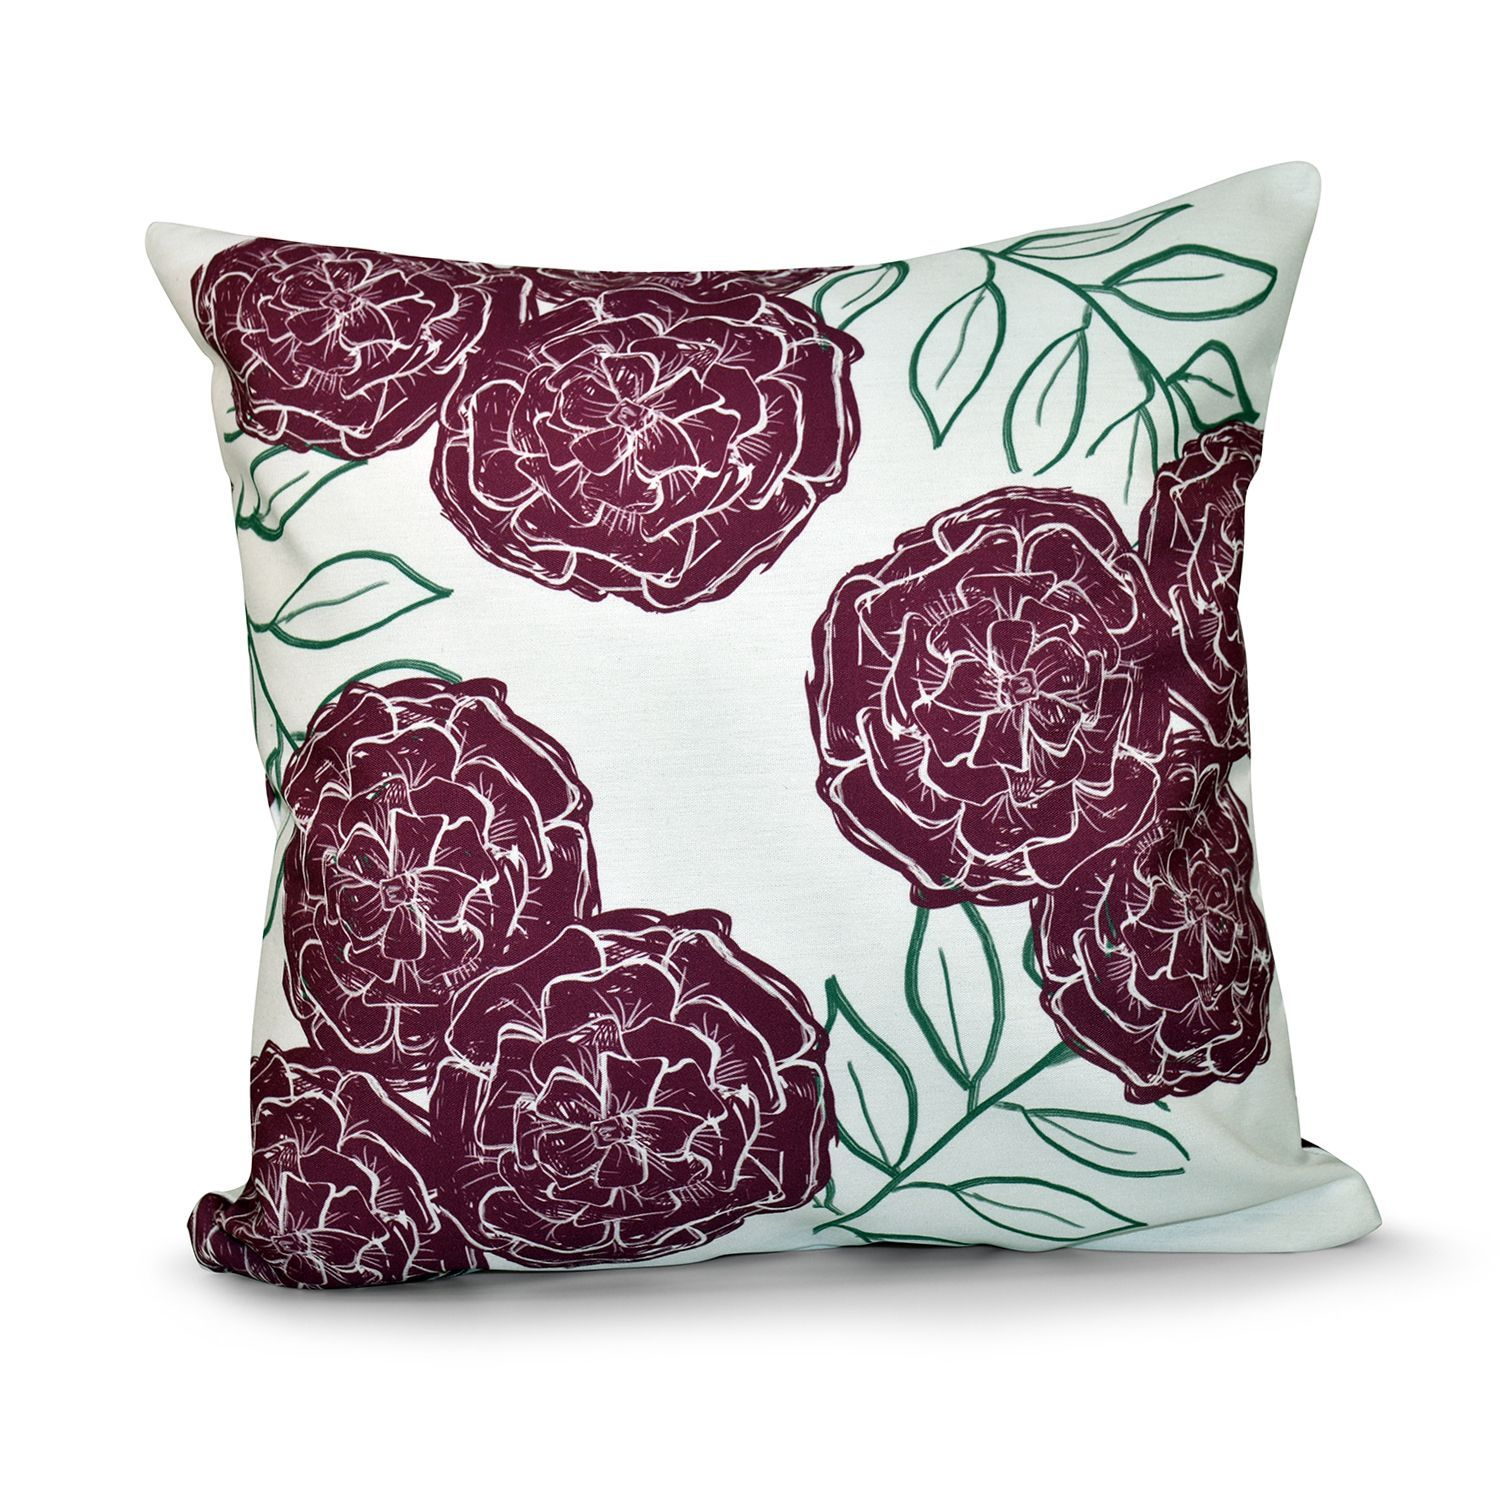 Zinnia floral x inch outdoor pillow by e by design products